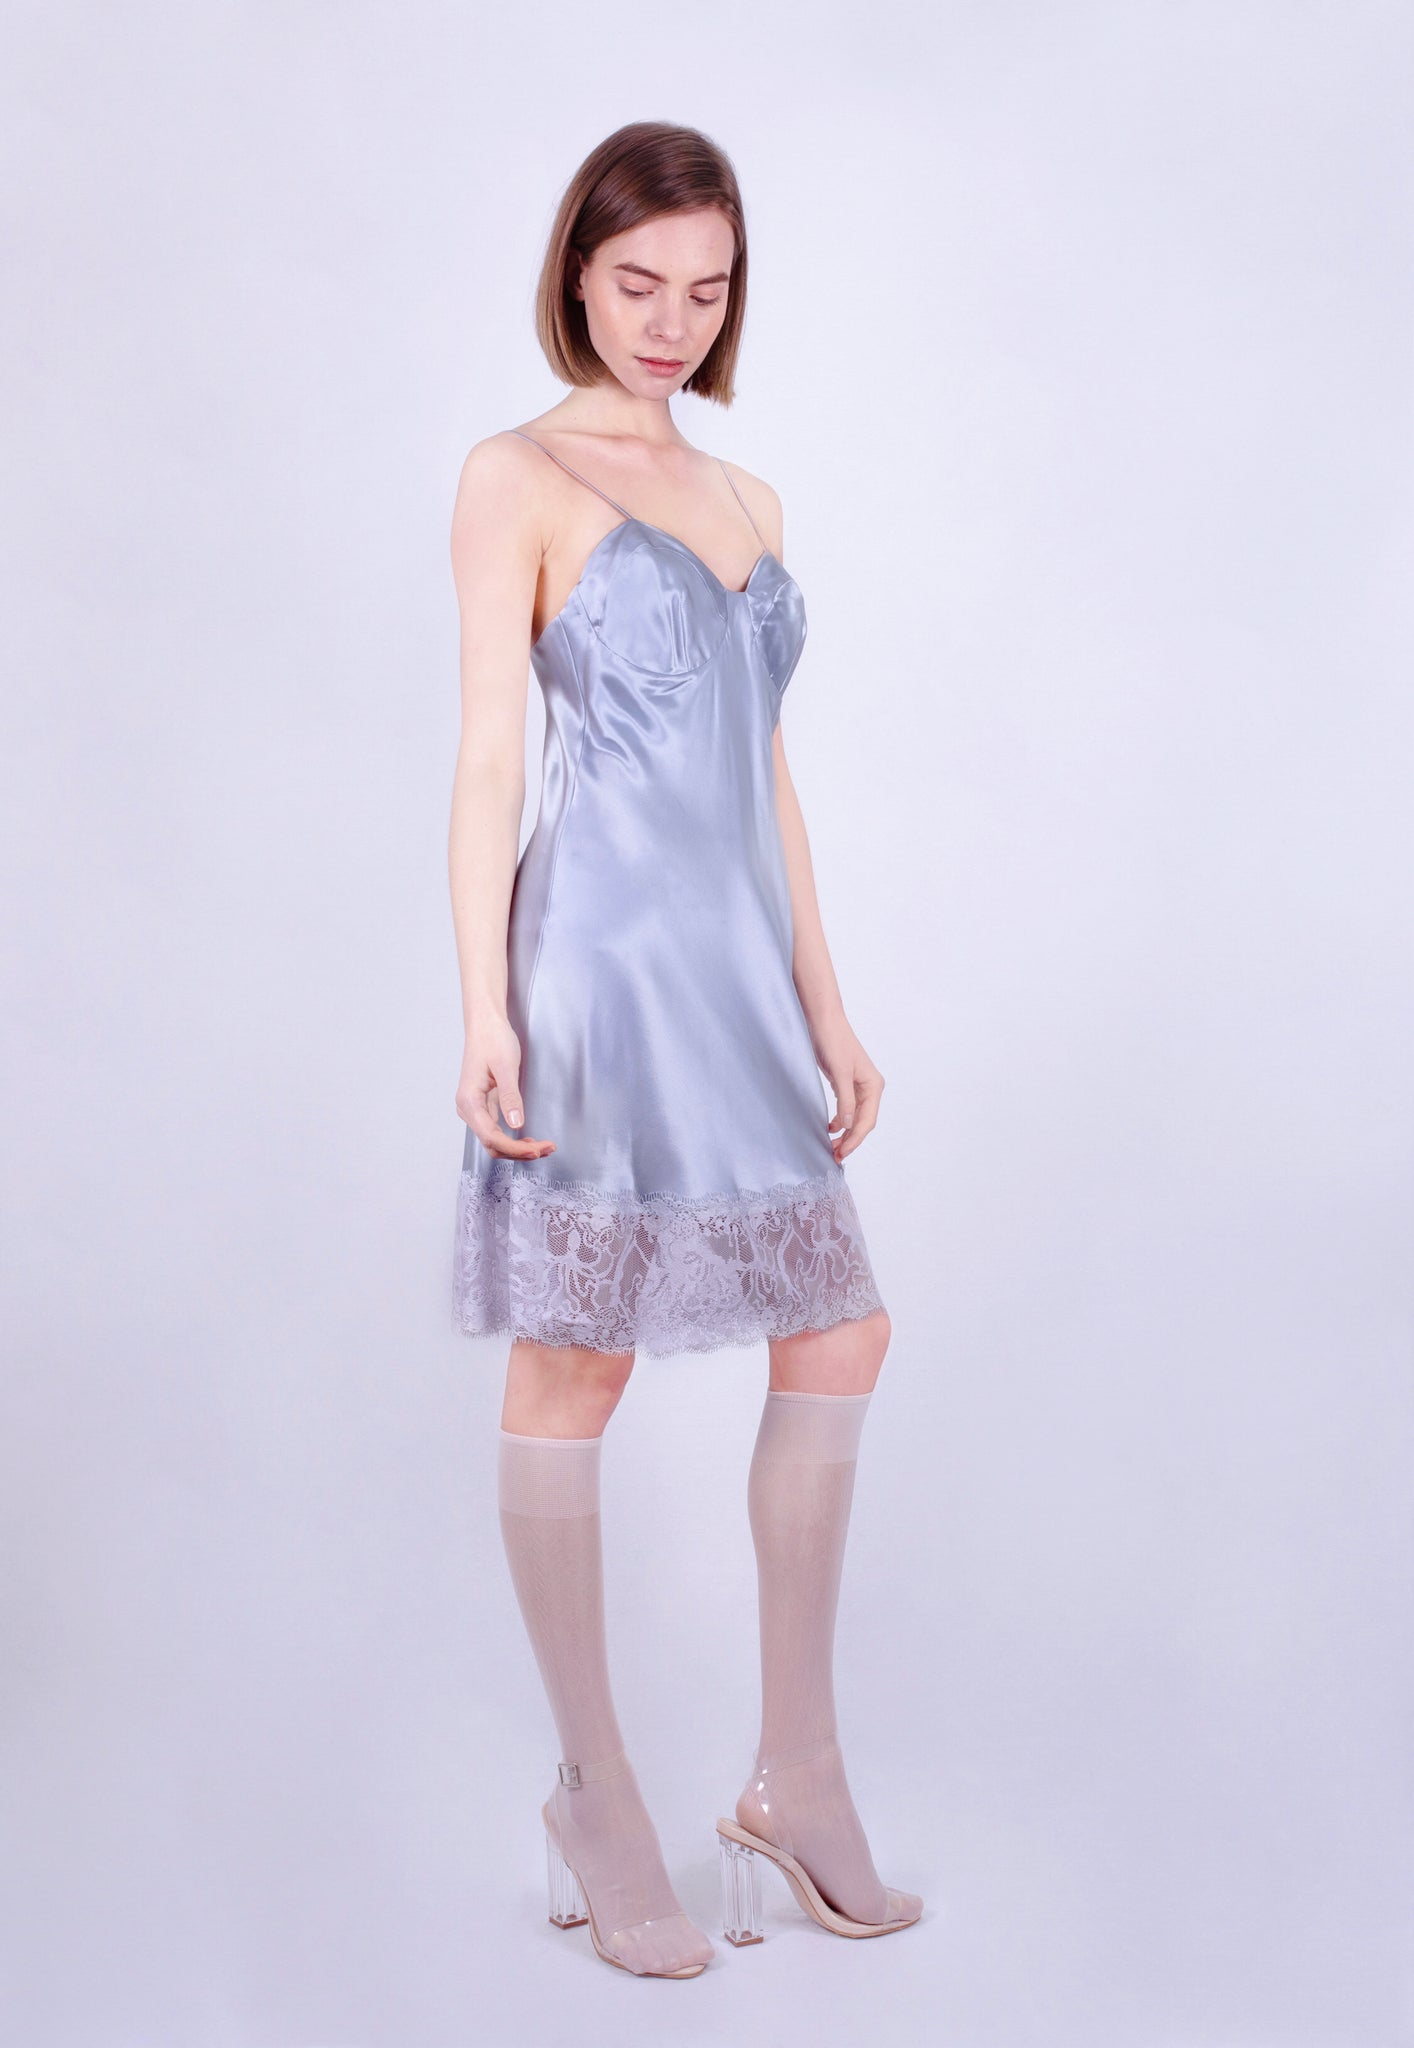 Stormy Ocean Lace Slip Dress